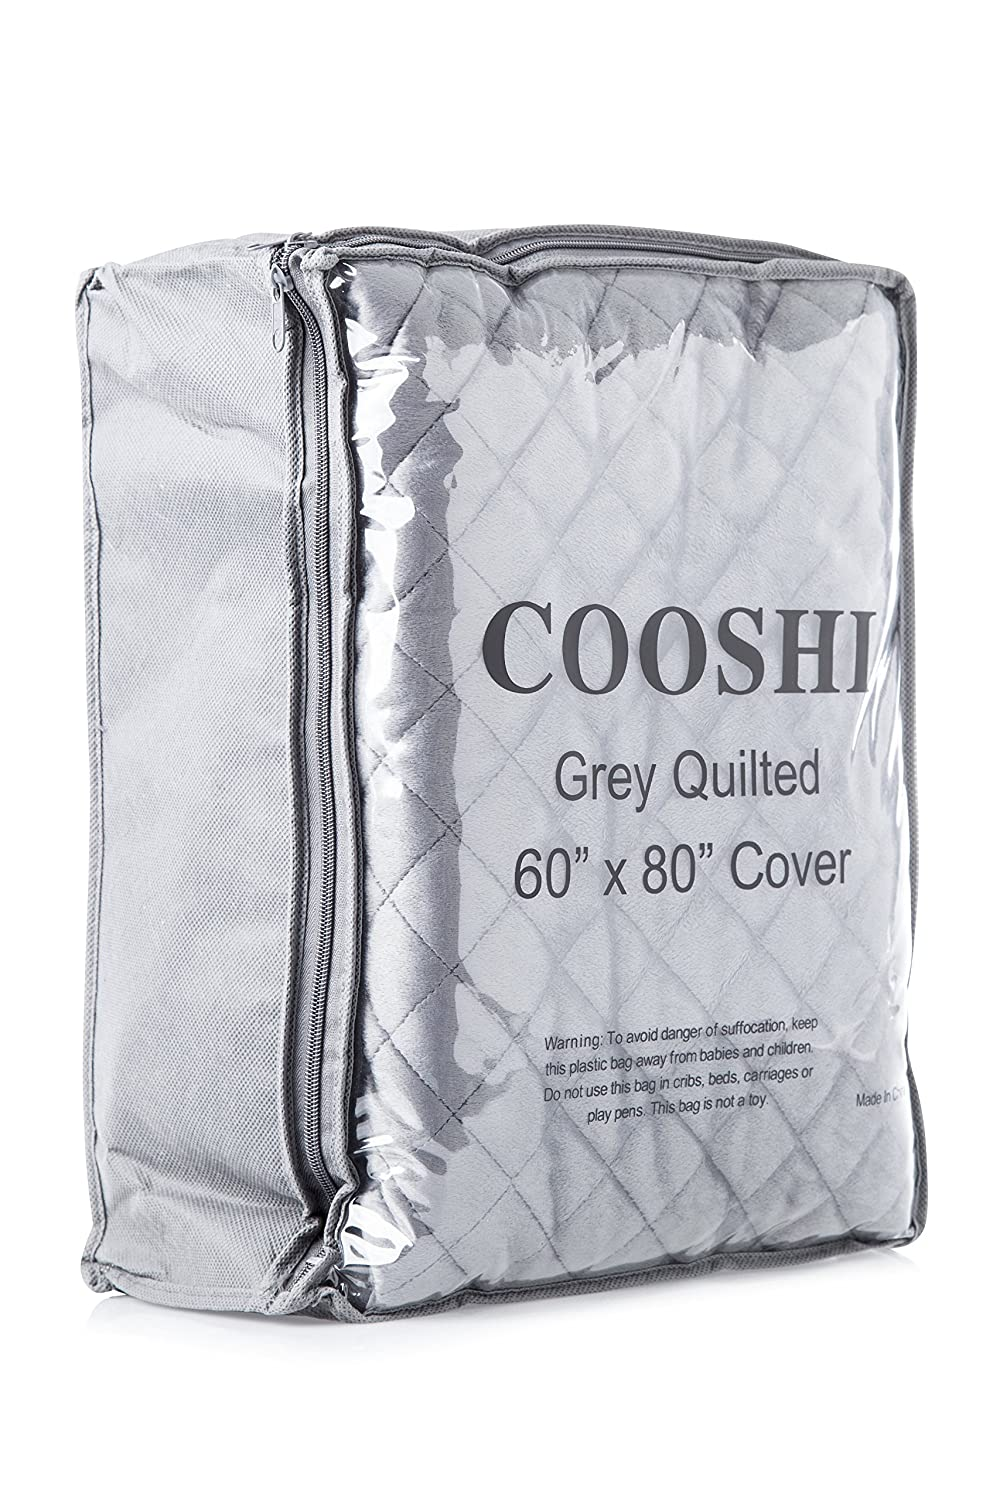 Cooshi Duvet Cover for Weighted Blankets - 60 x 80 - Soft Minky Dot - Grey